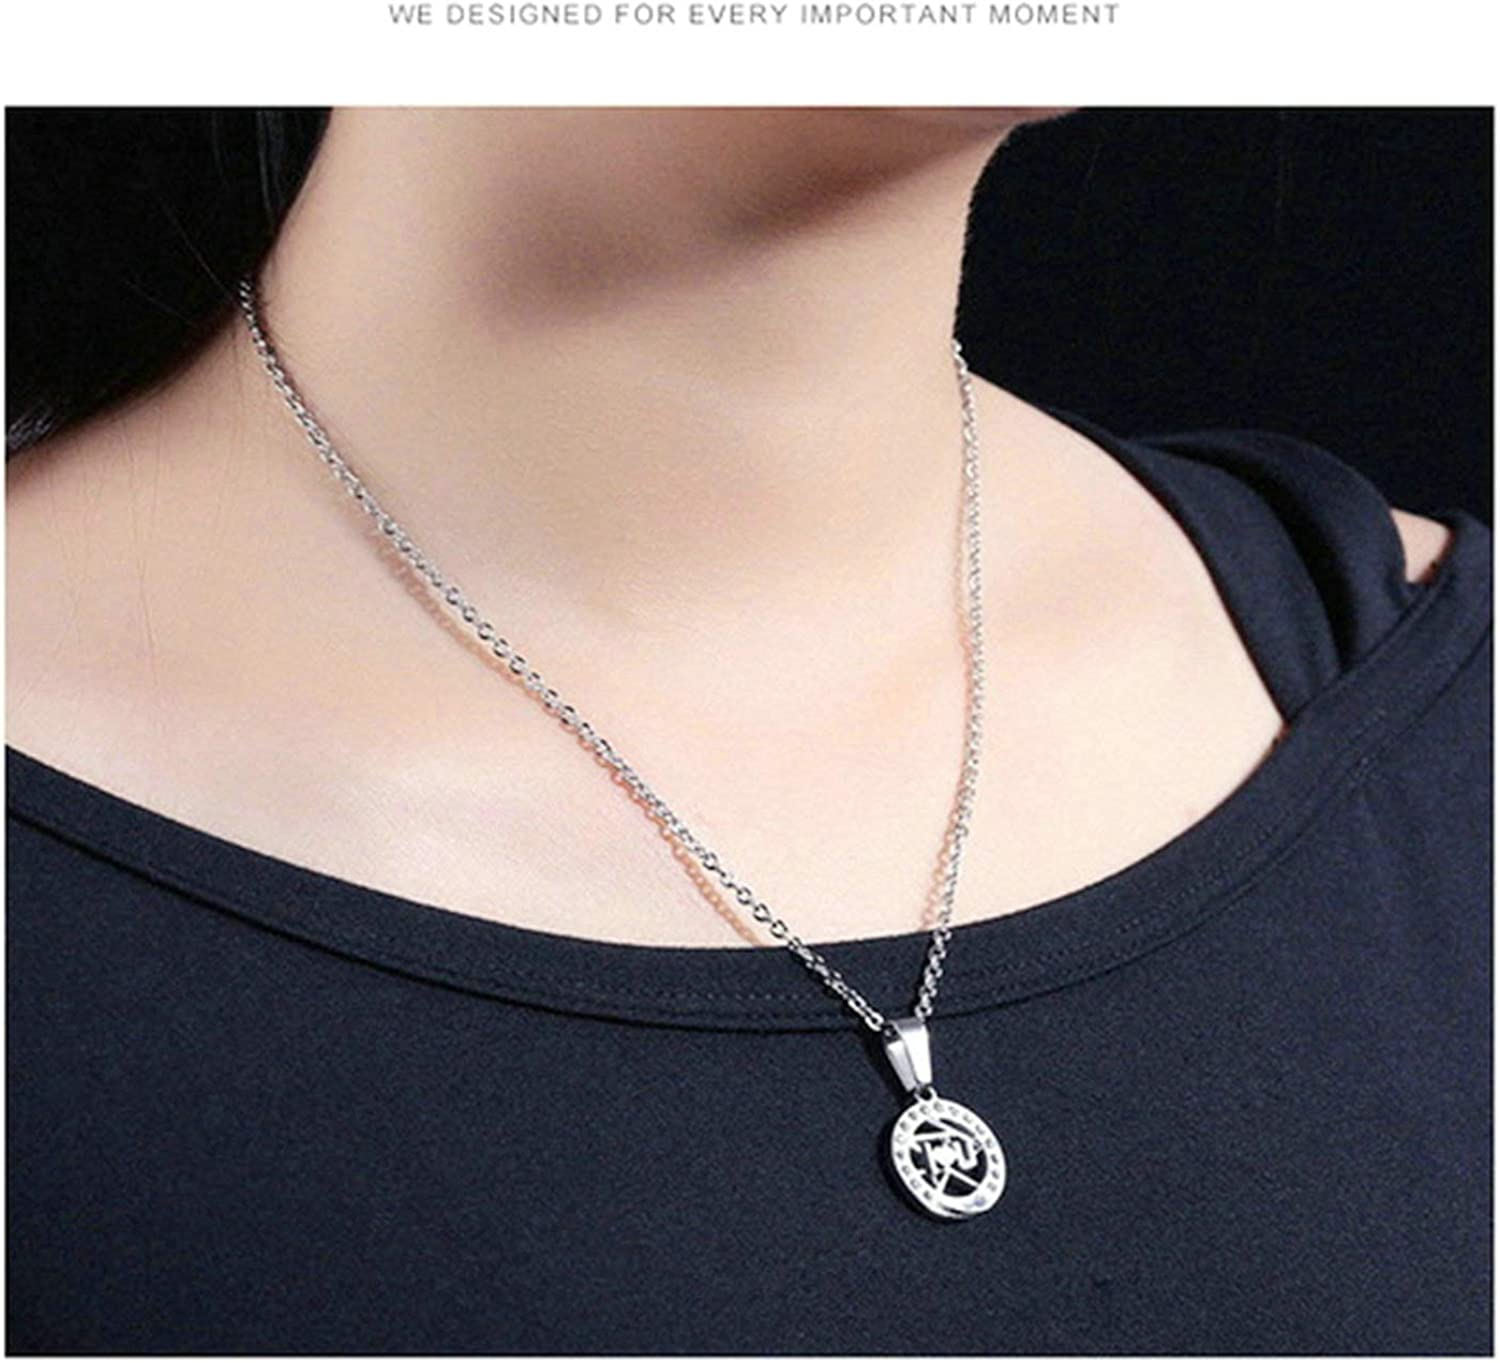 Aooaz Necklace Set Stainless Steel Unique Wedding Necklace Cubic Zirconia Moon and Sun Necklace Set for Couples